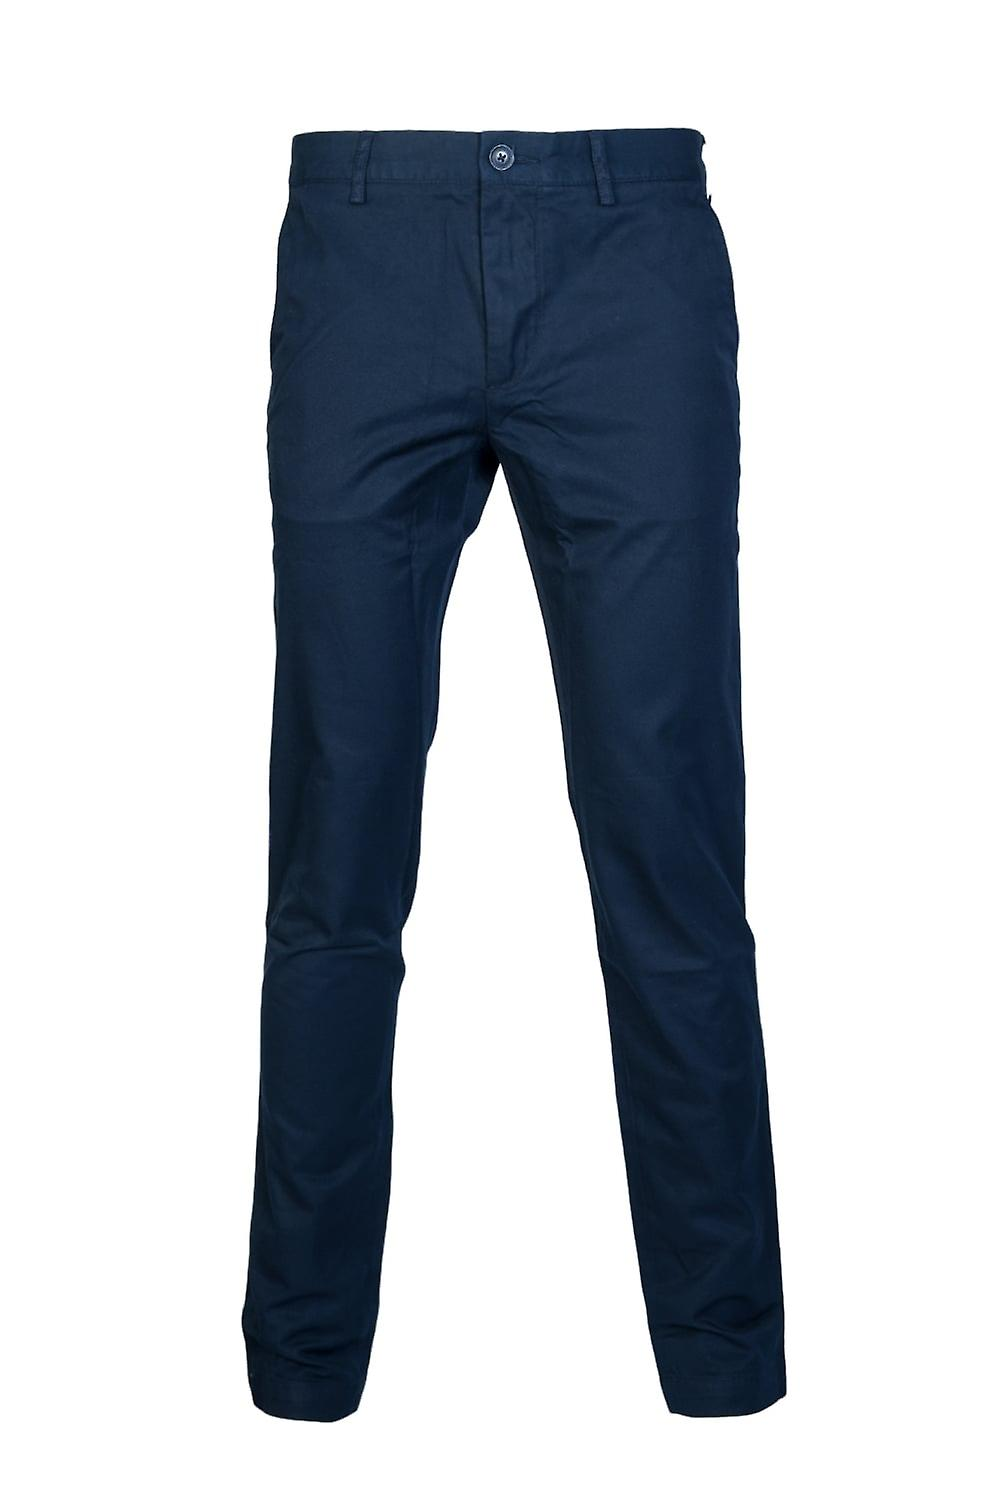 Lacoste Chinos HH8238-166